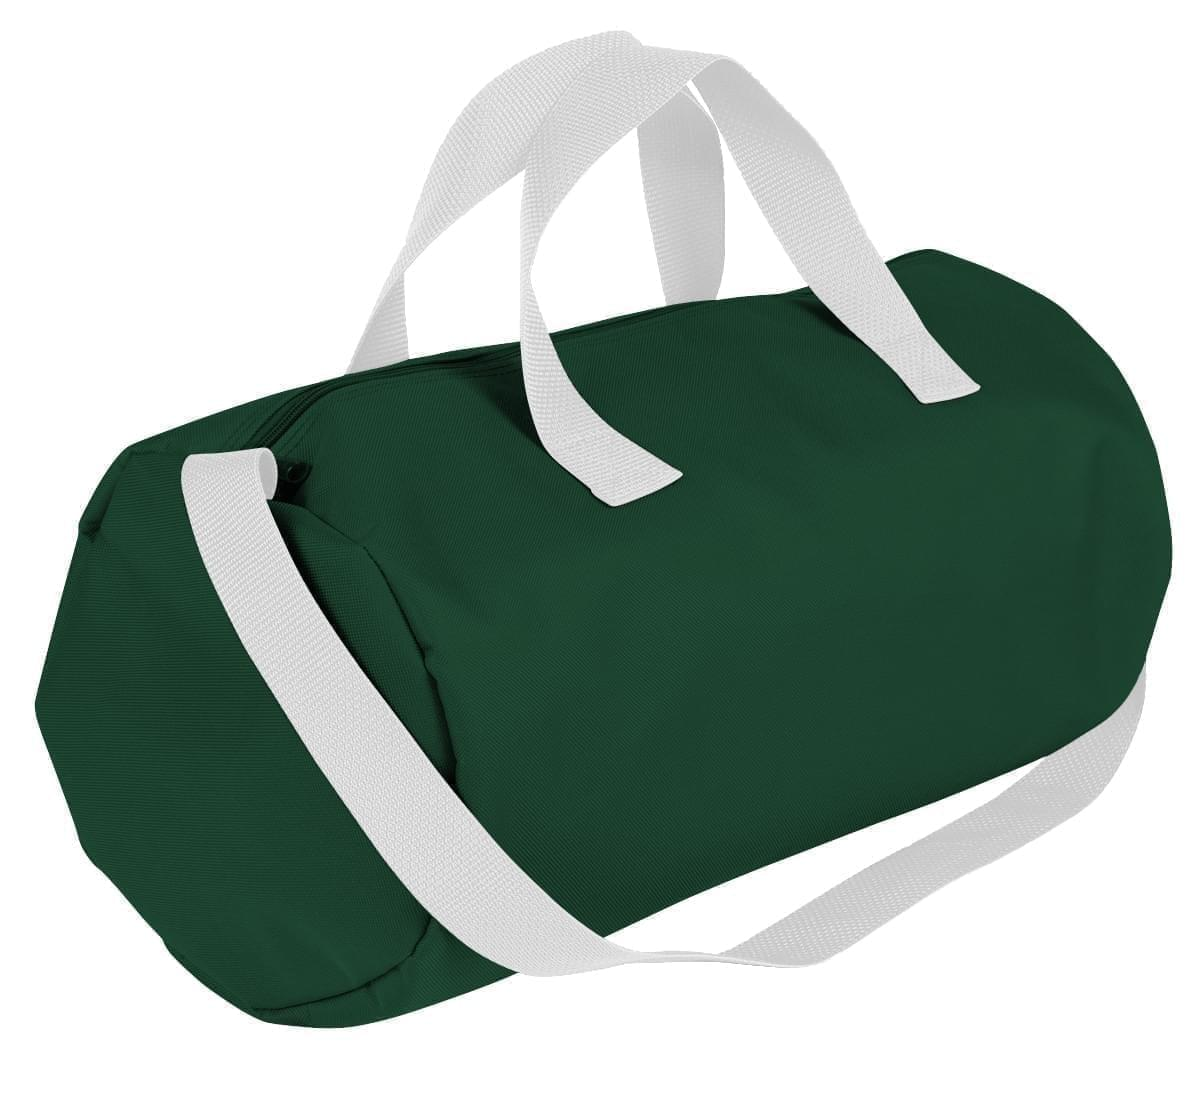 USA Made Nylon Poly Gym Roll Bags, Hunter Green-White, ROCX31AAS4